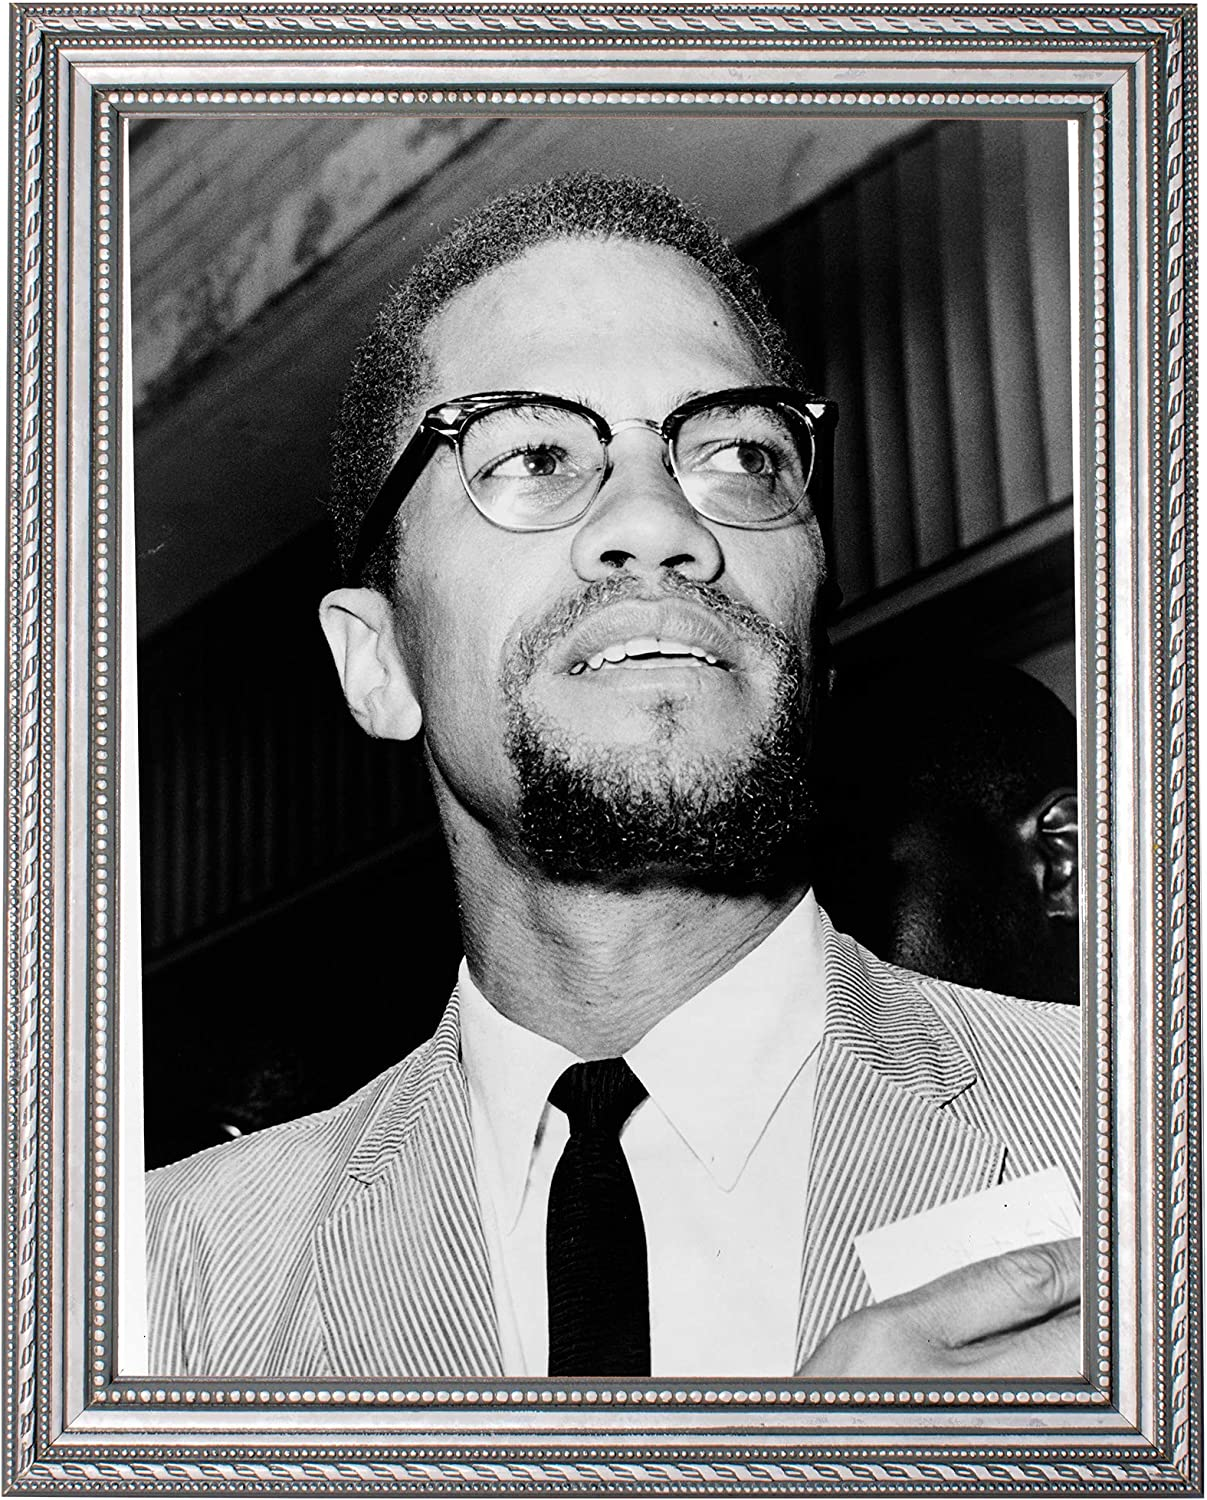 Malcolm X Photograph in a Silver Frame Historical - Artwo New mail order Fresno Mall Ornate